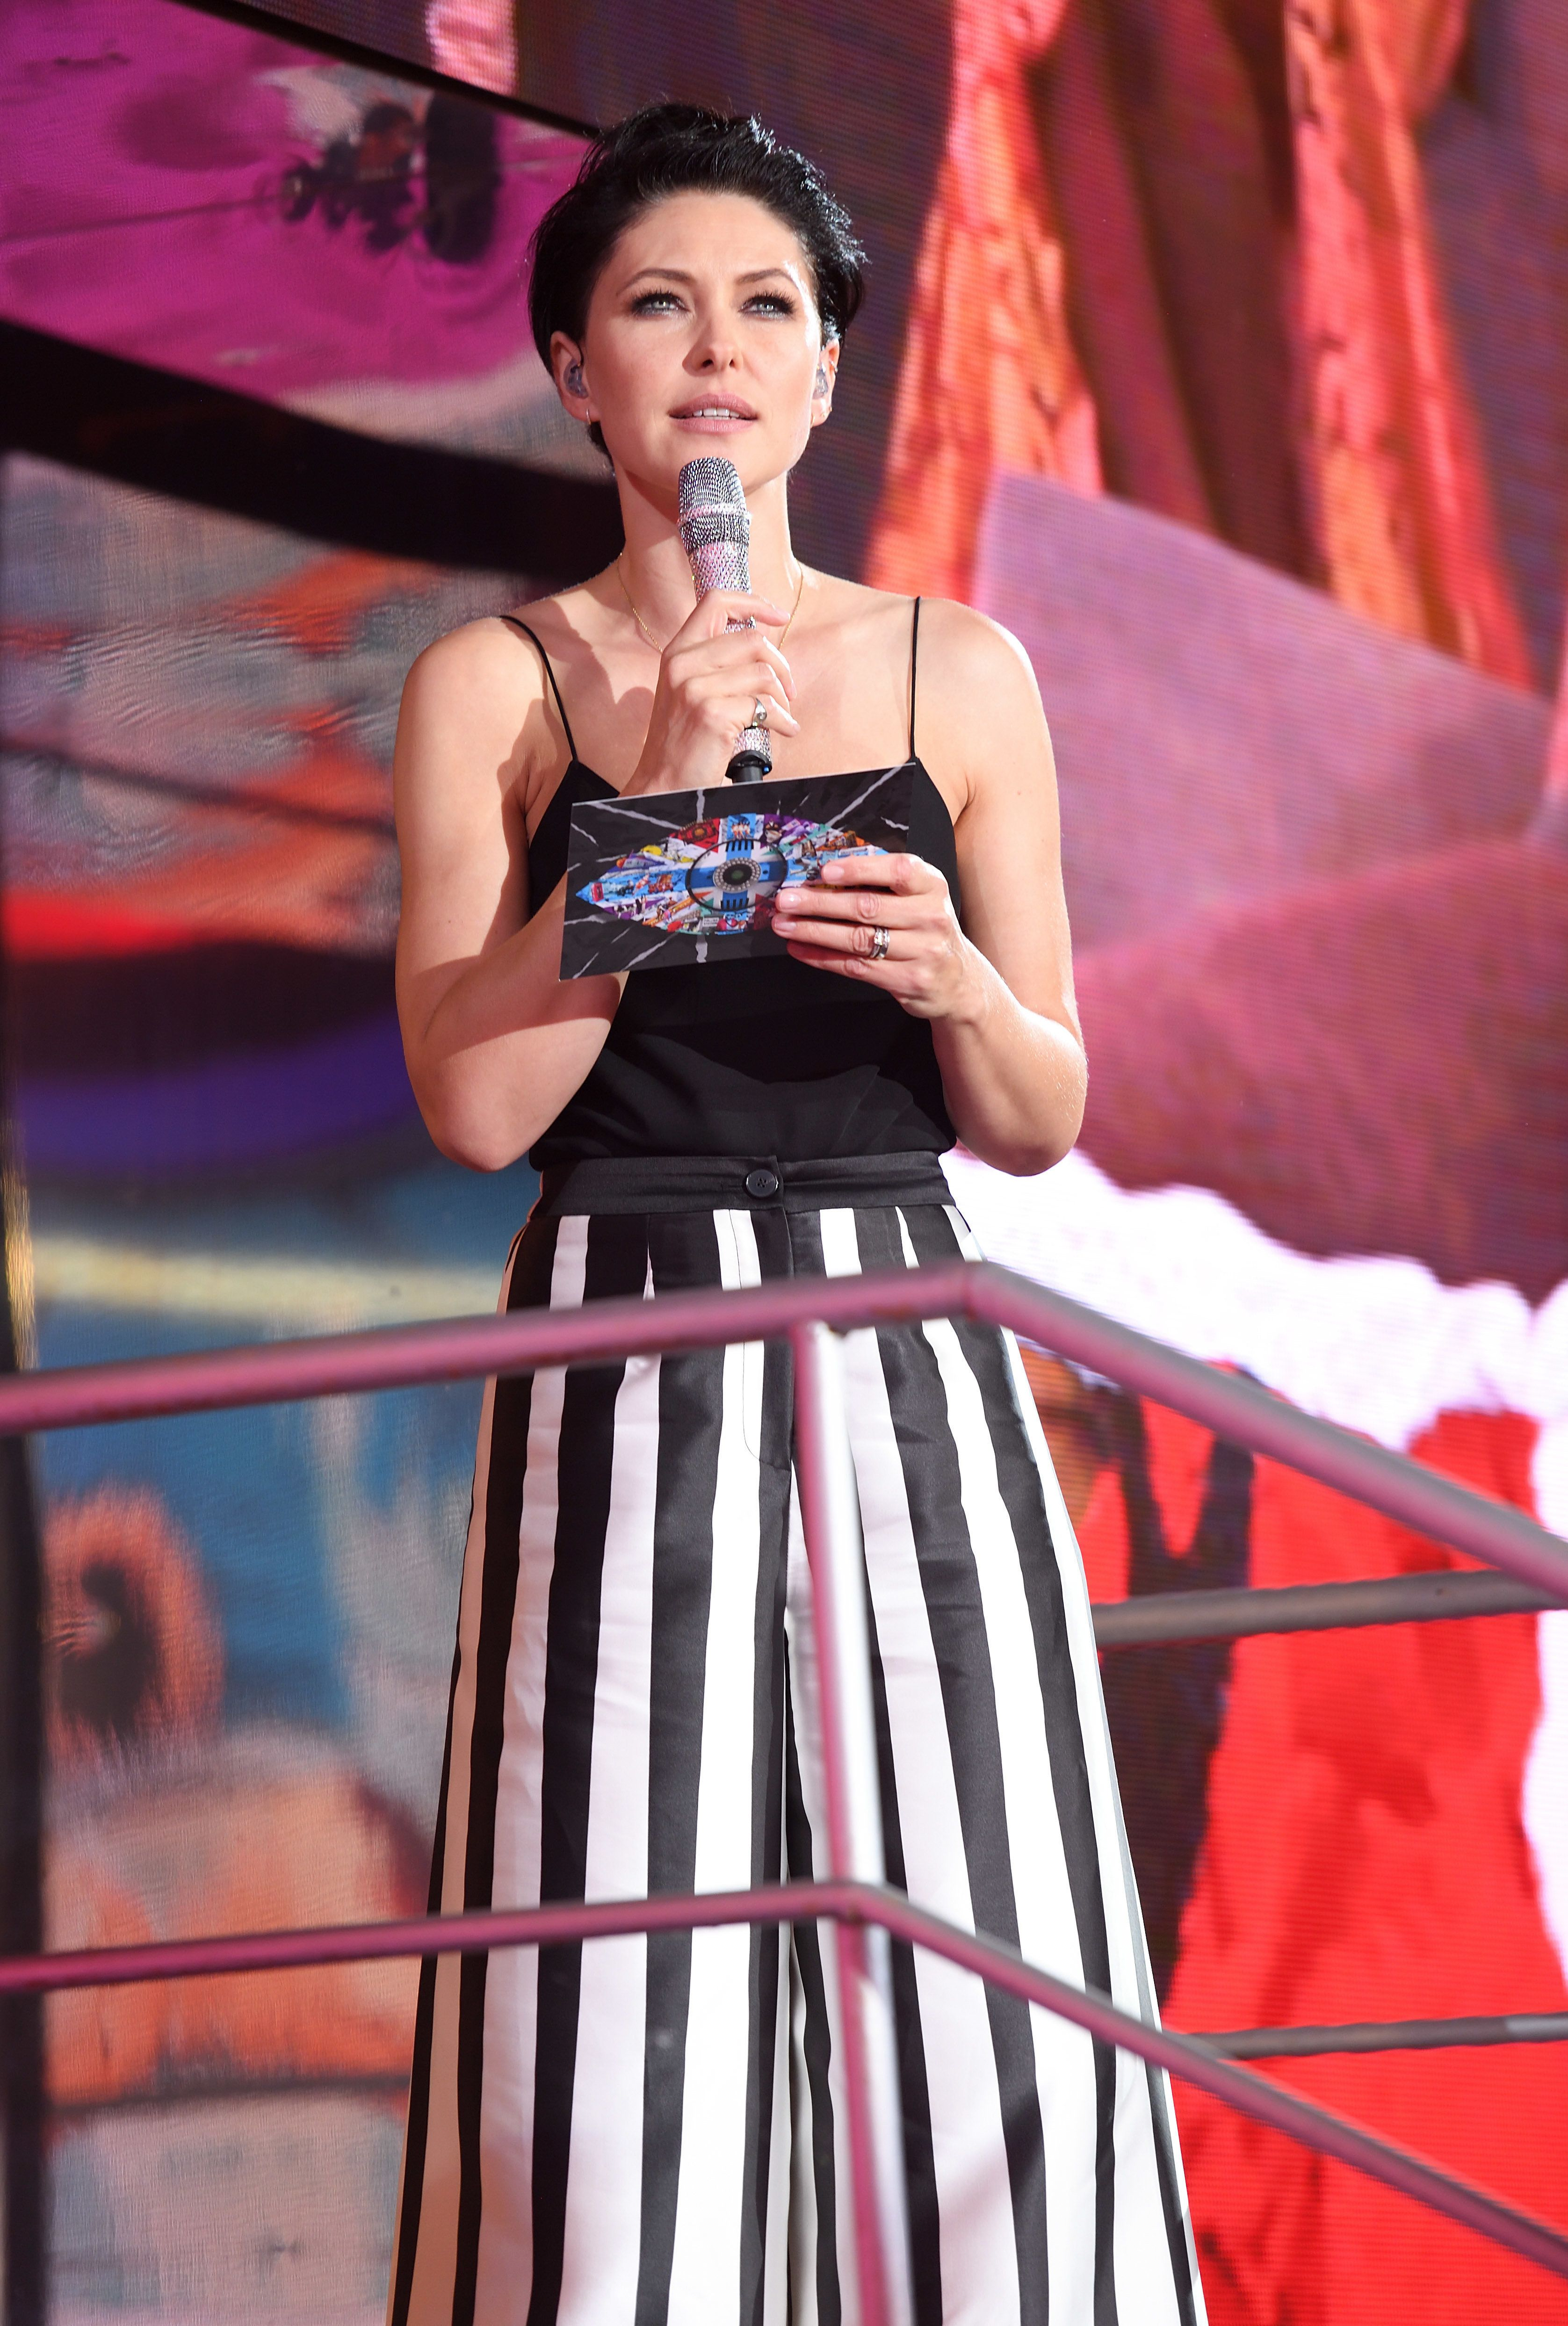 'Big Brother' Host Emma Willis Plays Down 'Love Island' Rivalry, After Getting Hammered In The